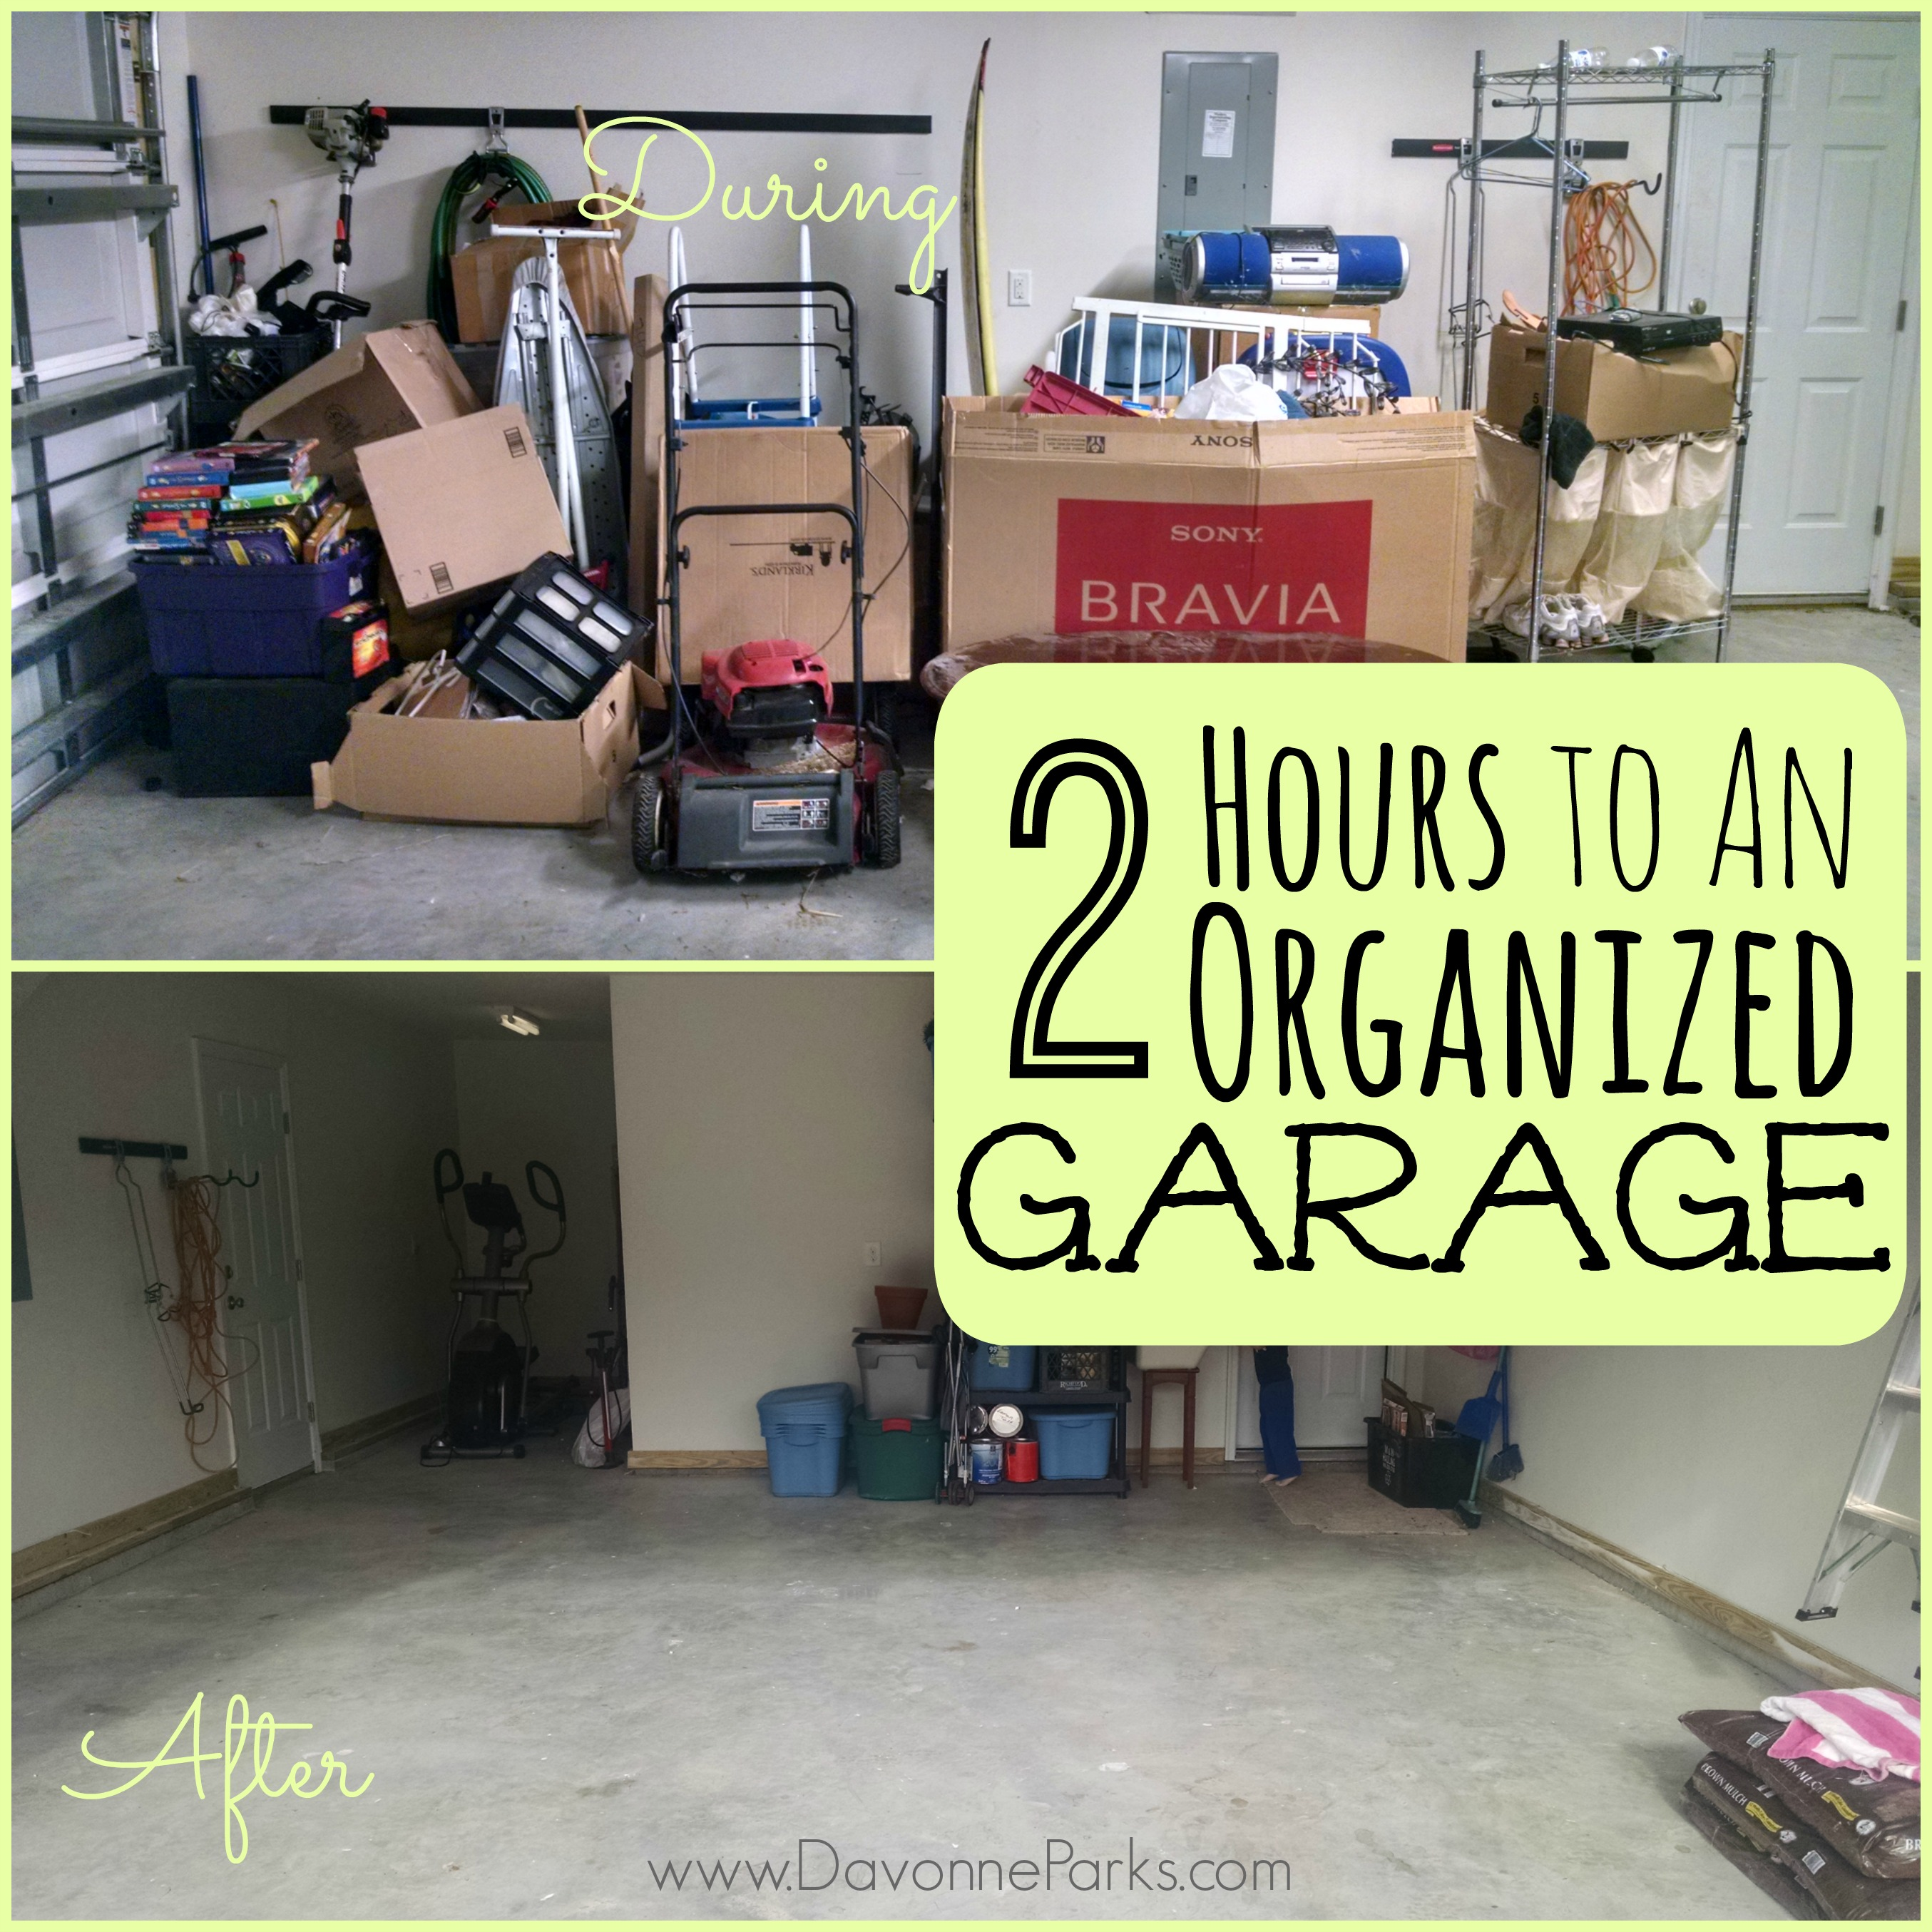 Two Hours to an Organized Garage (Reader's Success Story!)